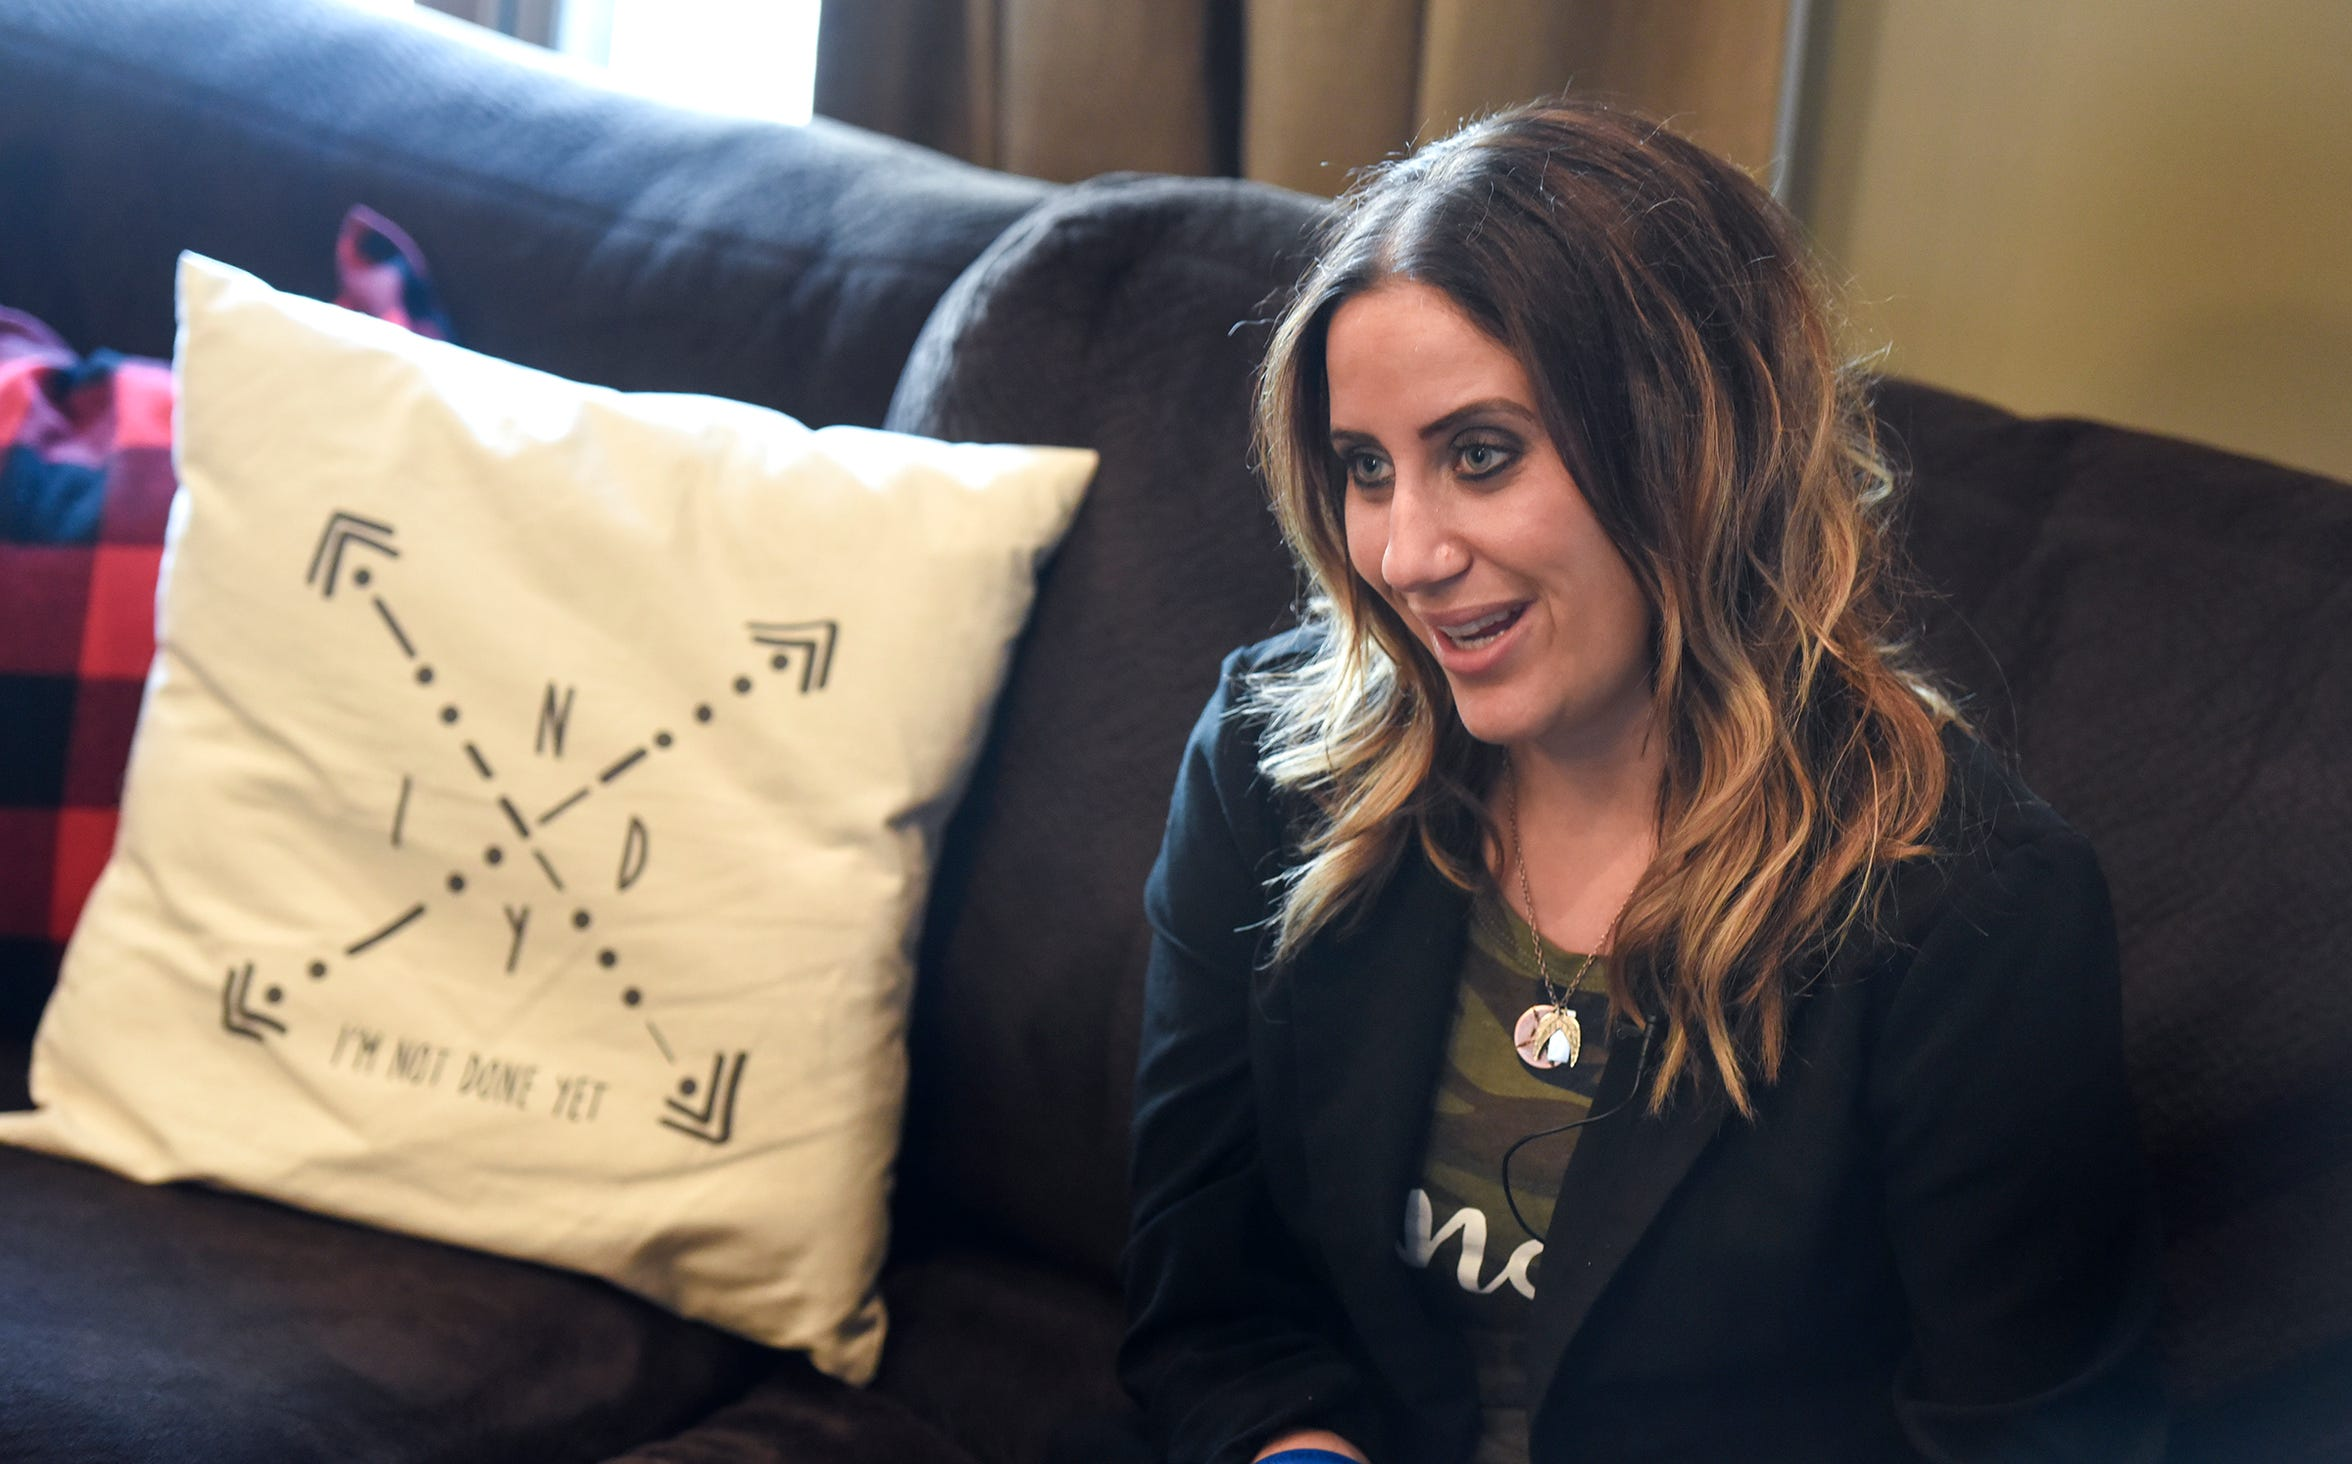 INDY Foundation founder Kayla Strand talks about her work during an interview Thursday, Dec. 13, at her home.